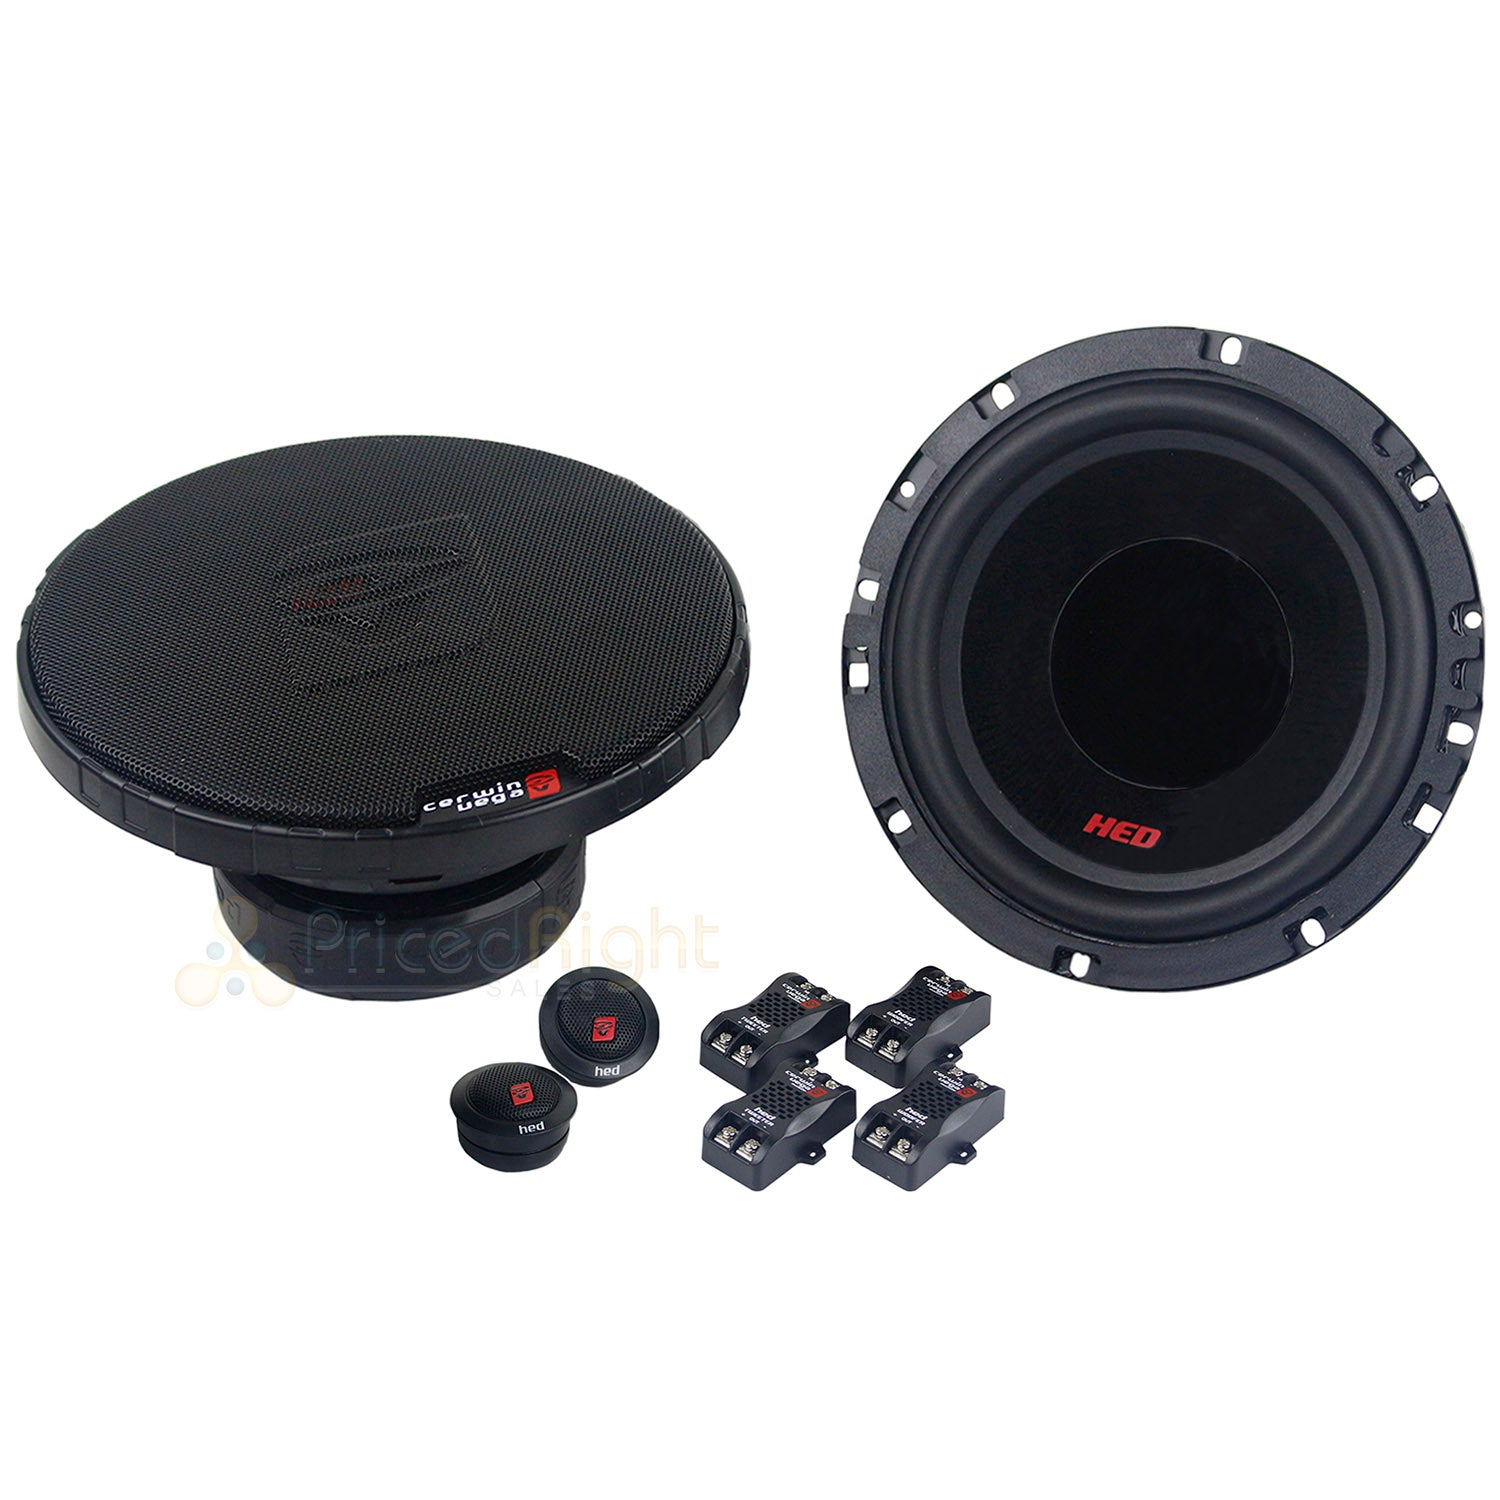 "4 Speaker Cerwin Vega 2-Way Component 6.5"" Speaker Systems with Tweeters H765C"